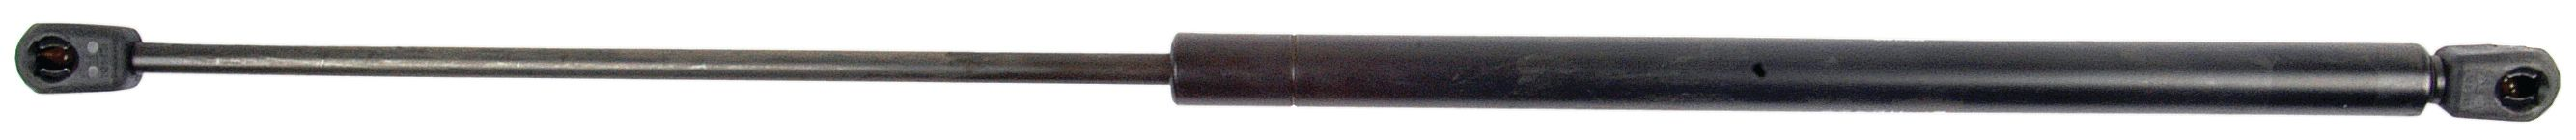 FORD NEW HOLLAND GAS STRUT 52923